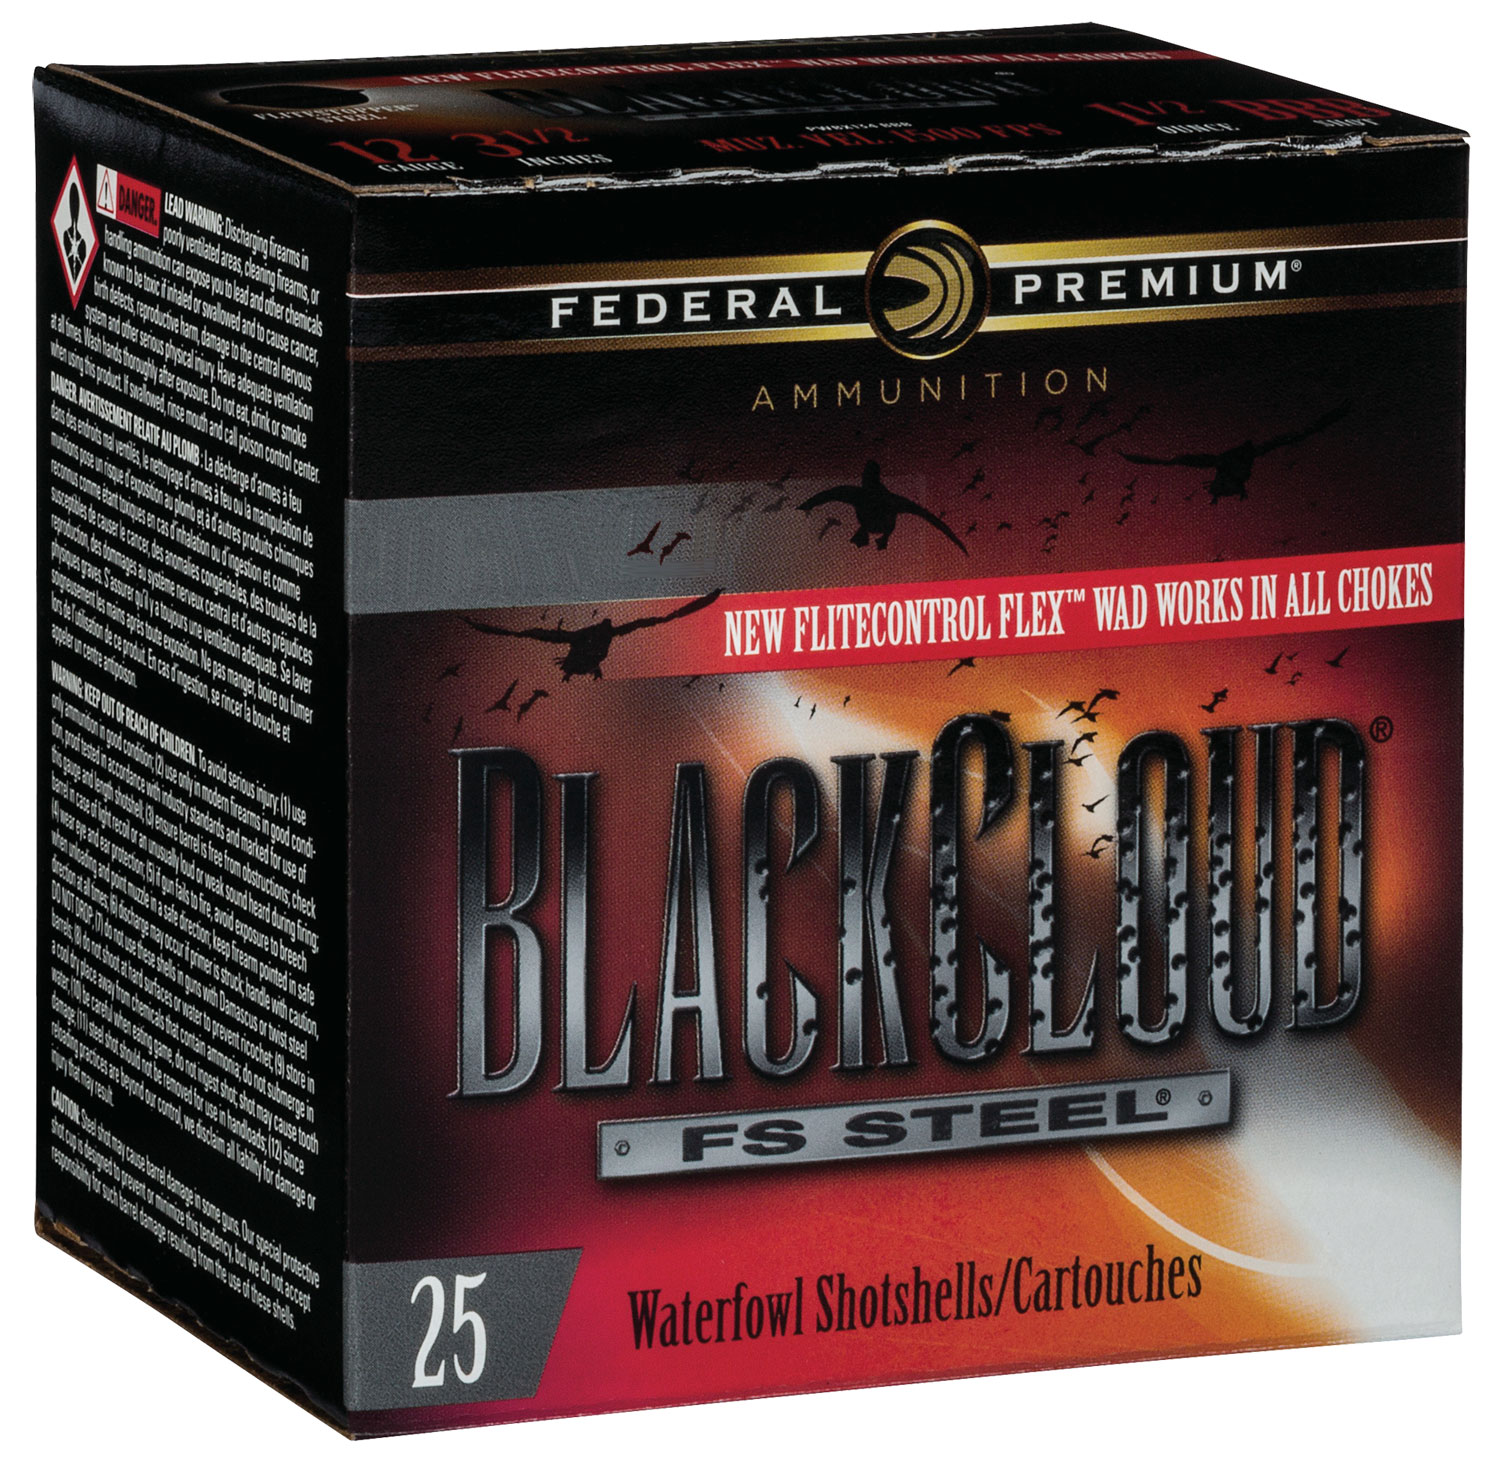 Federal PWBX1072 Black Cloud FS Steel 10 Gauge 3.50